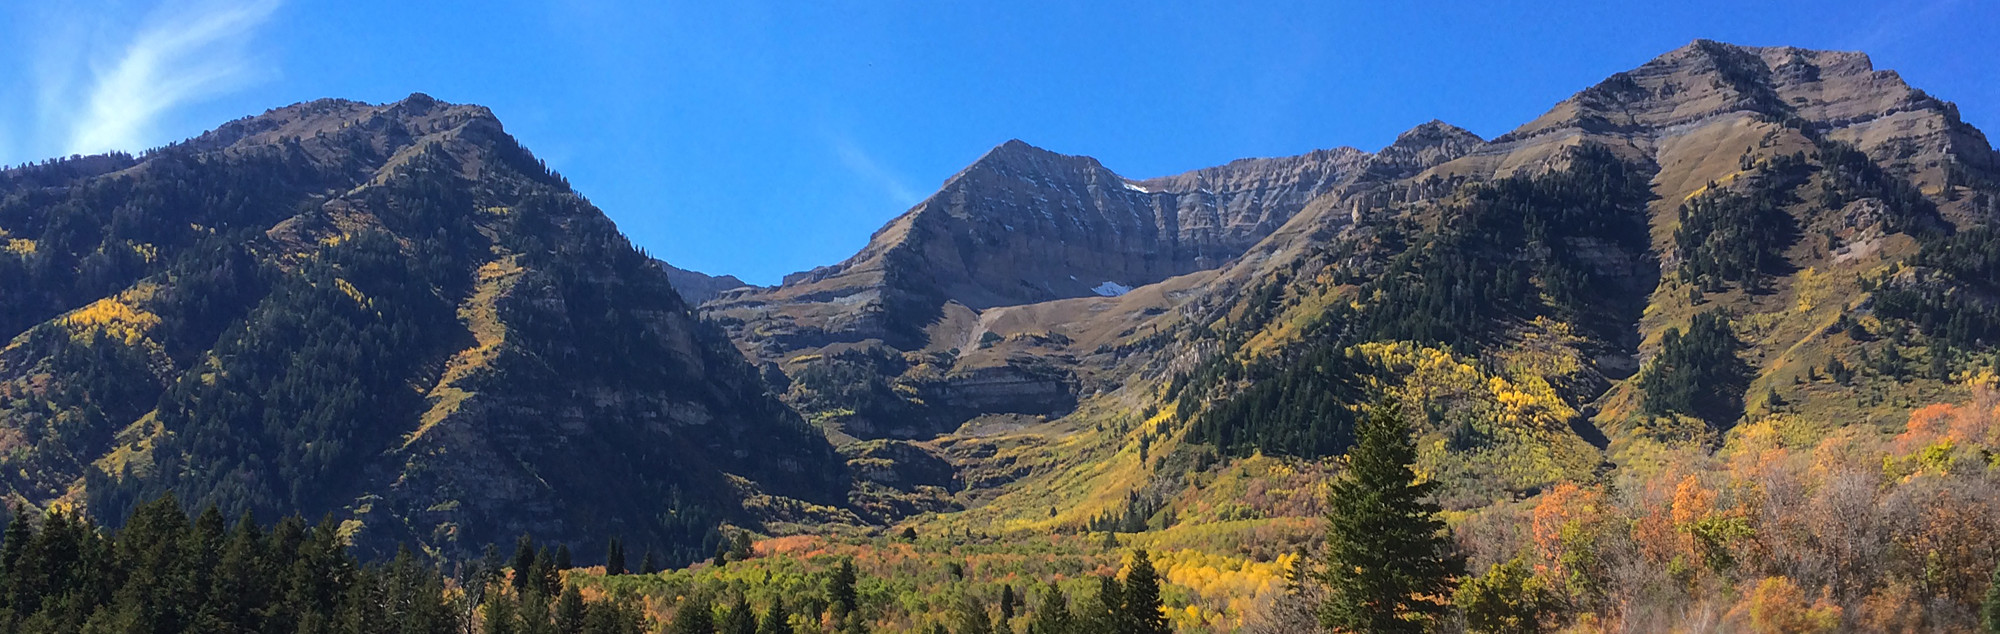 Picture of Sundance Mountain Range in the Fall